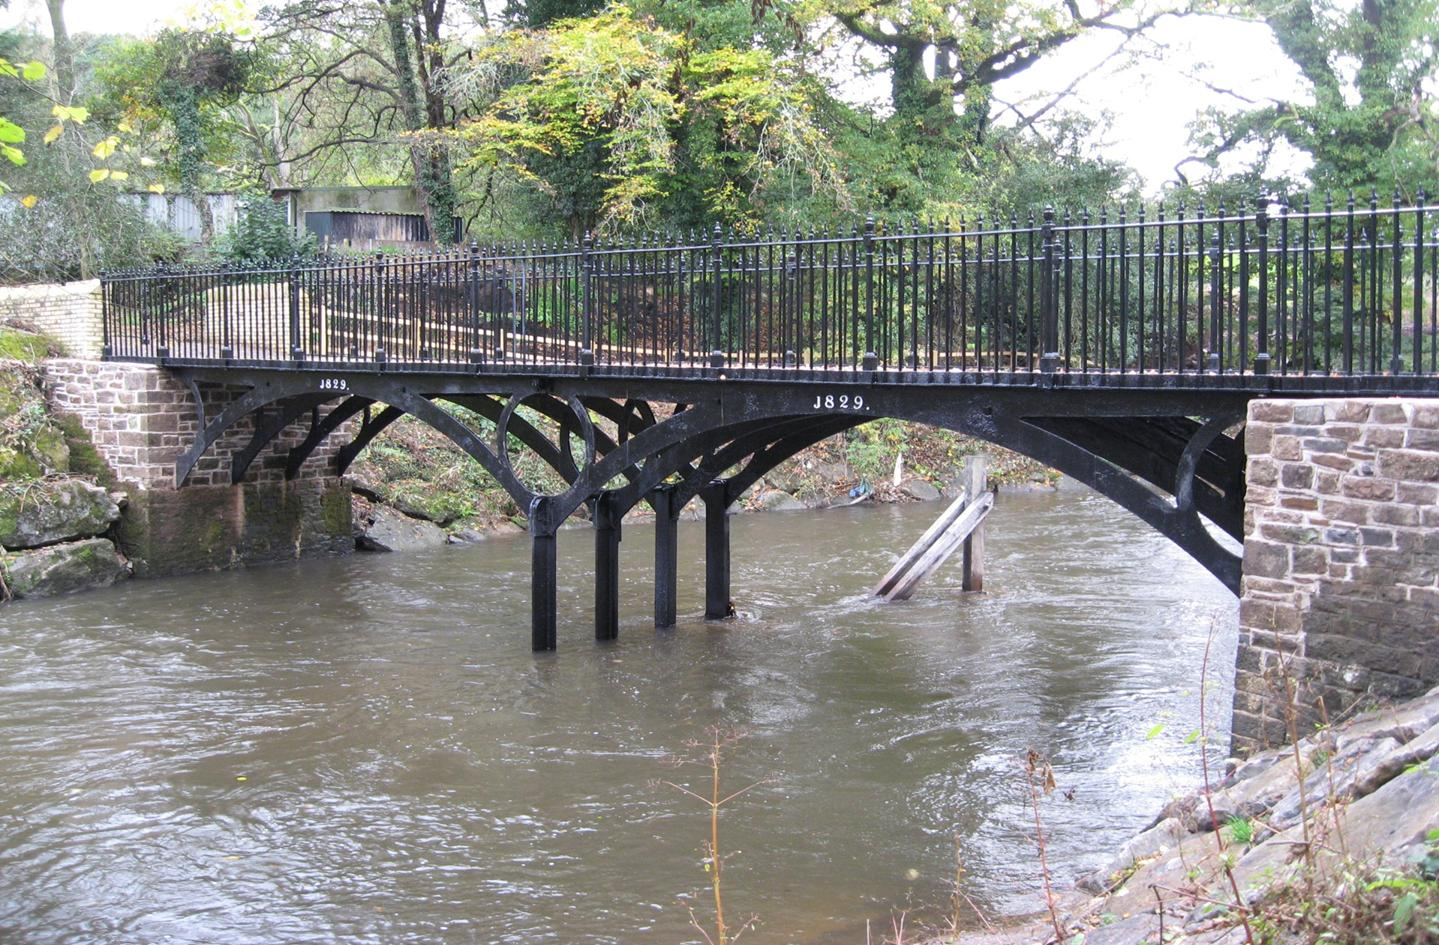 Iron Bridge Lower Machen Alun Griffiths Contractors Ltd